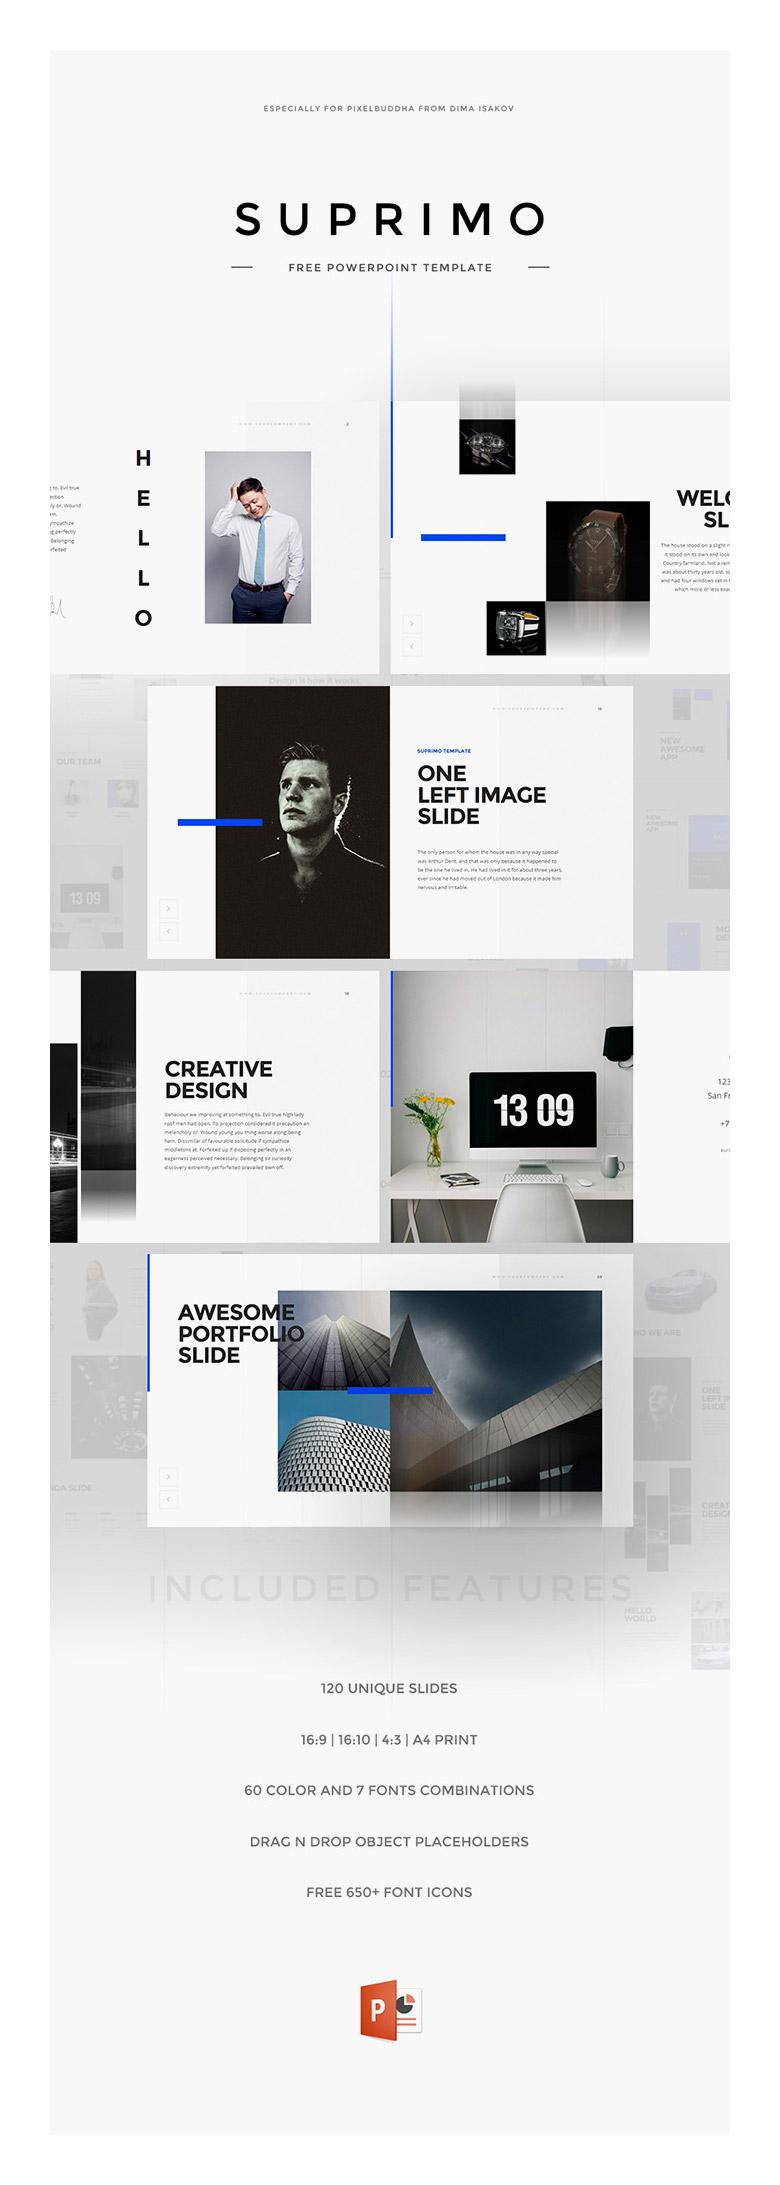 Suprimo PowerPoint Presentation Template